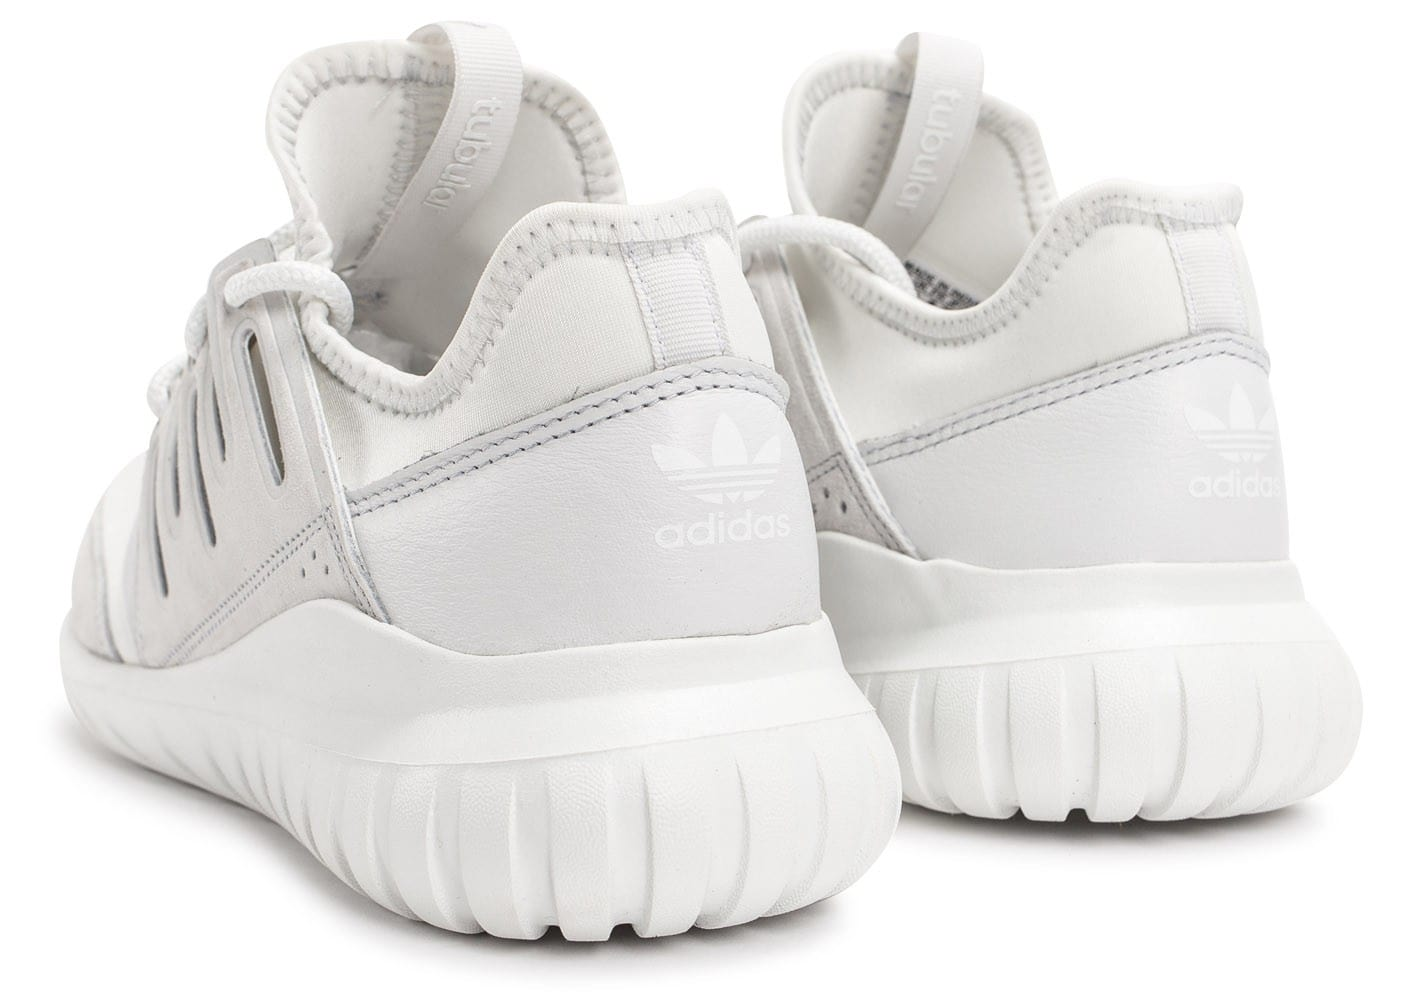 ... Chaussures adidas Tubular Radial blanche vue dessous ...